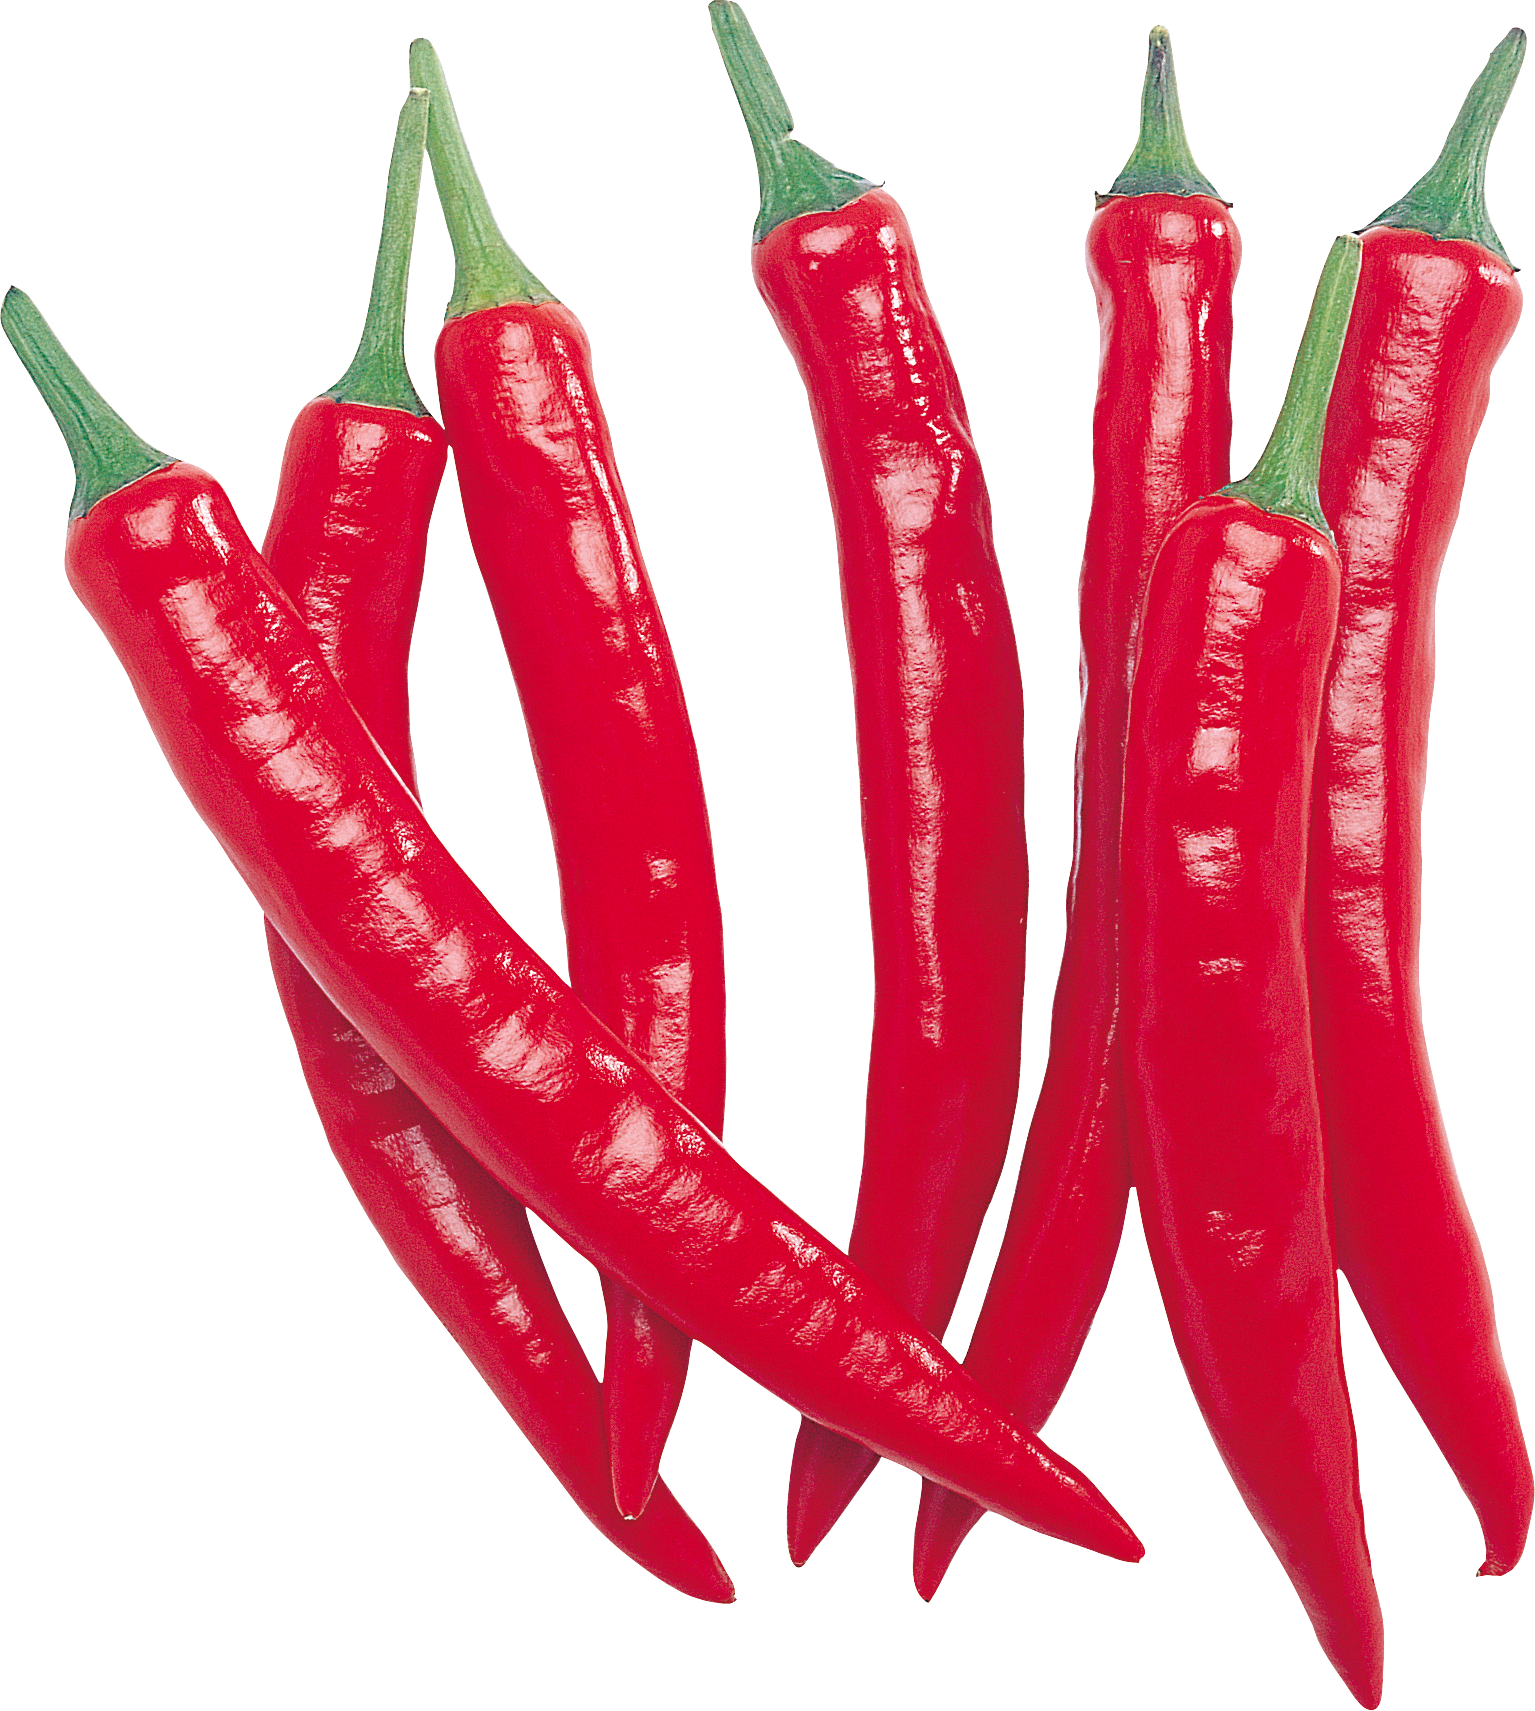 Chili clipart mild chili. Hot pepper one isolated